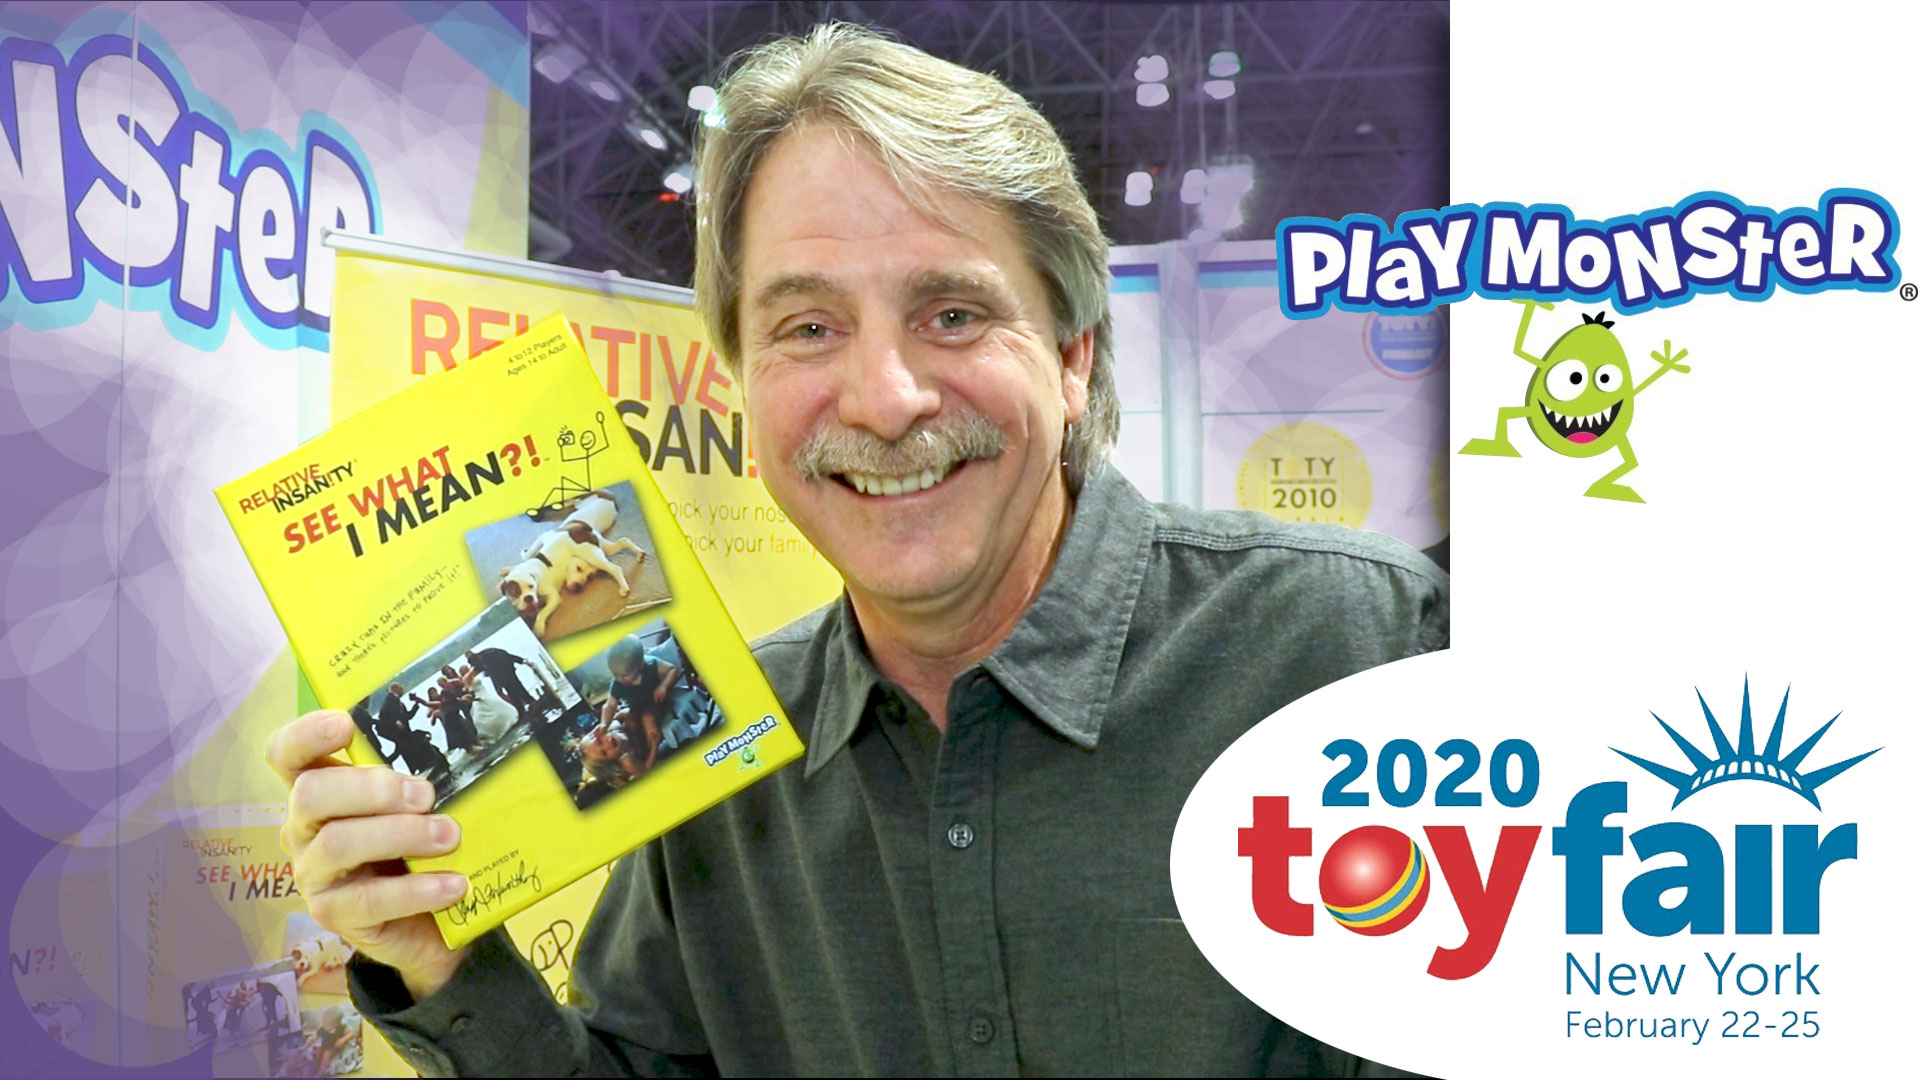 See What I Mean - Play Monster Toy Fair 2020